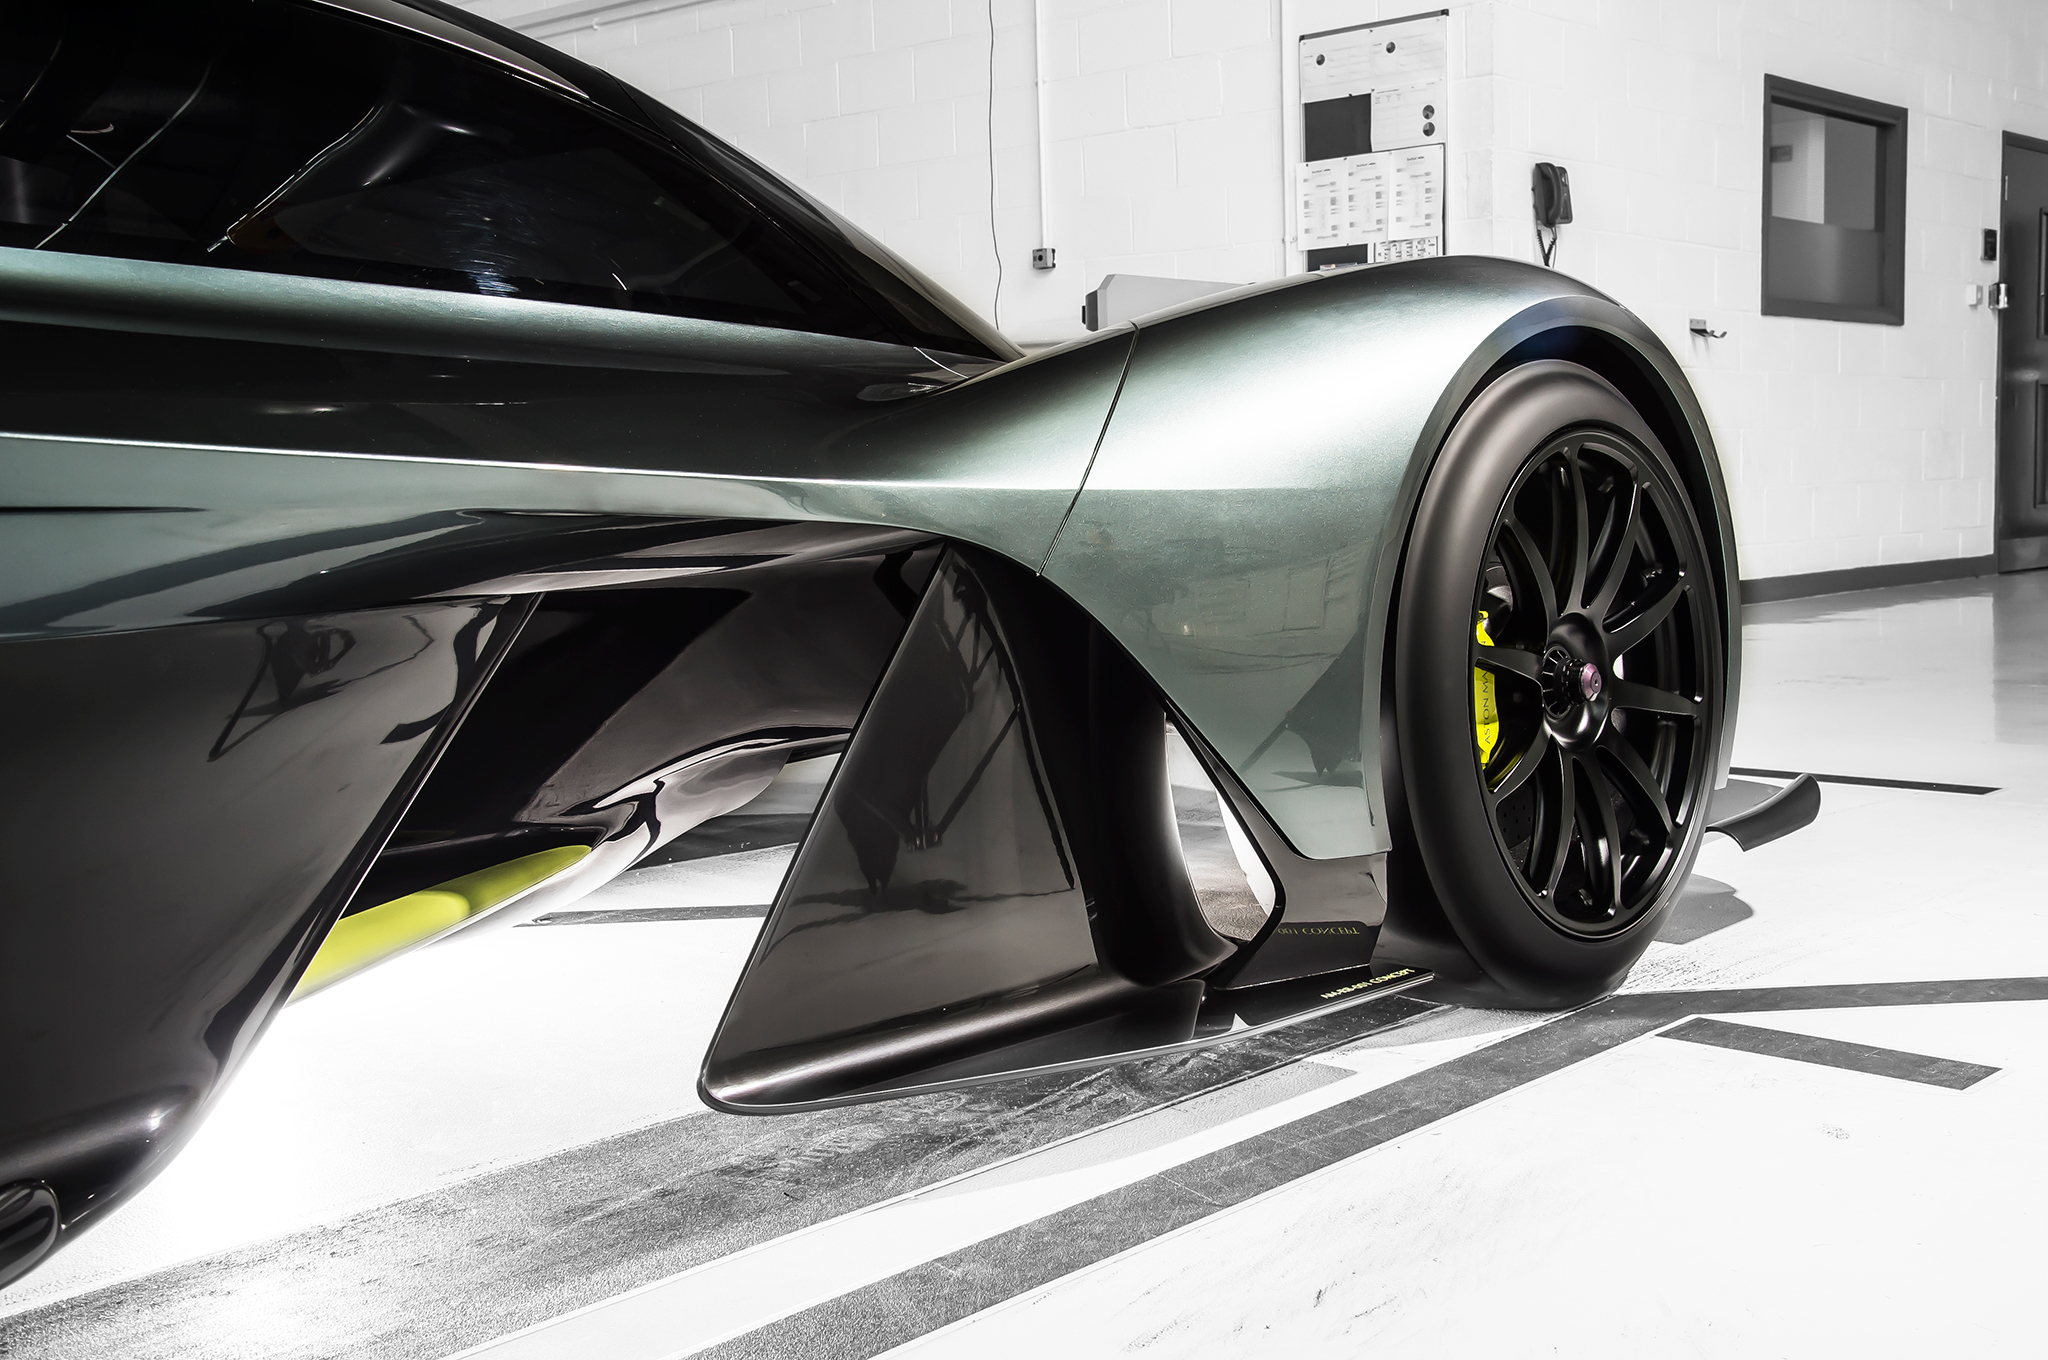 Aston Martin S Hypercar Is Sold Out Motorhive